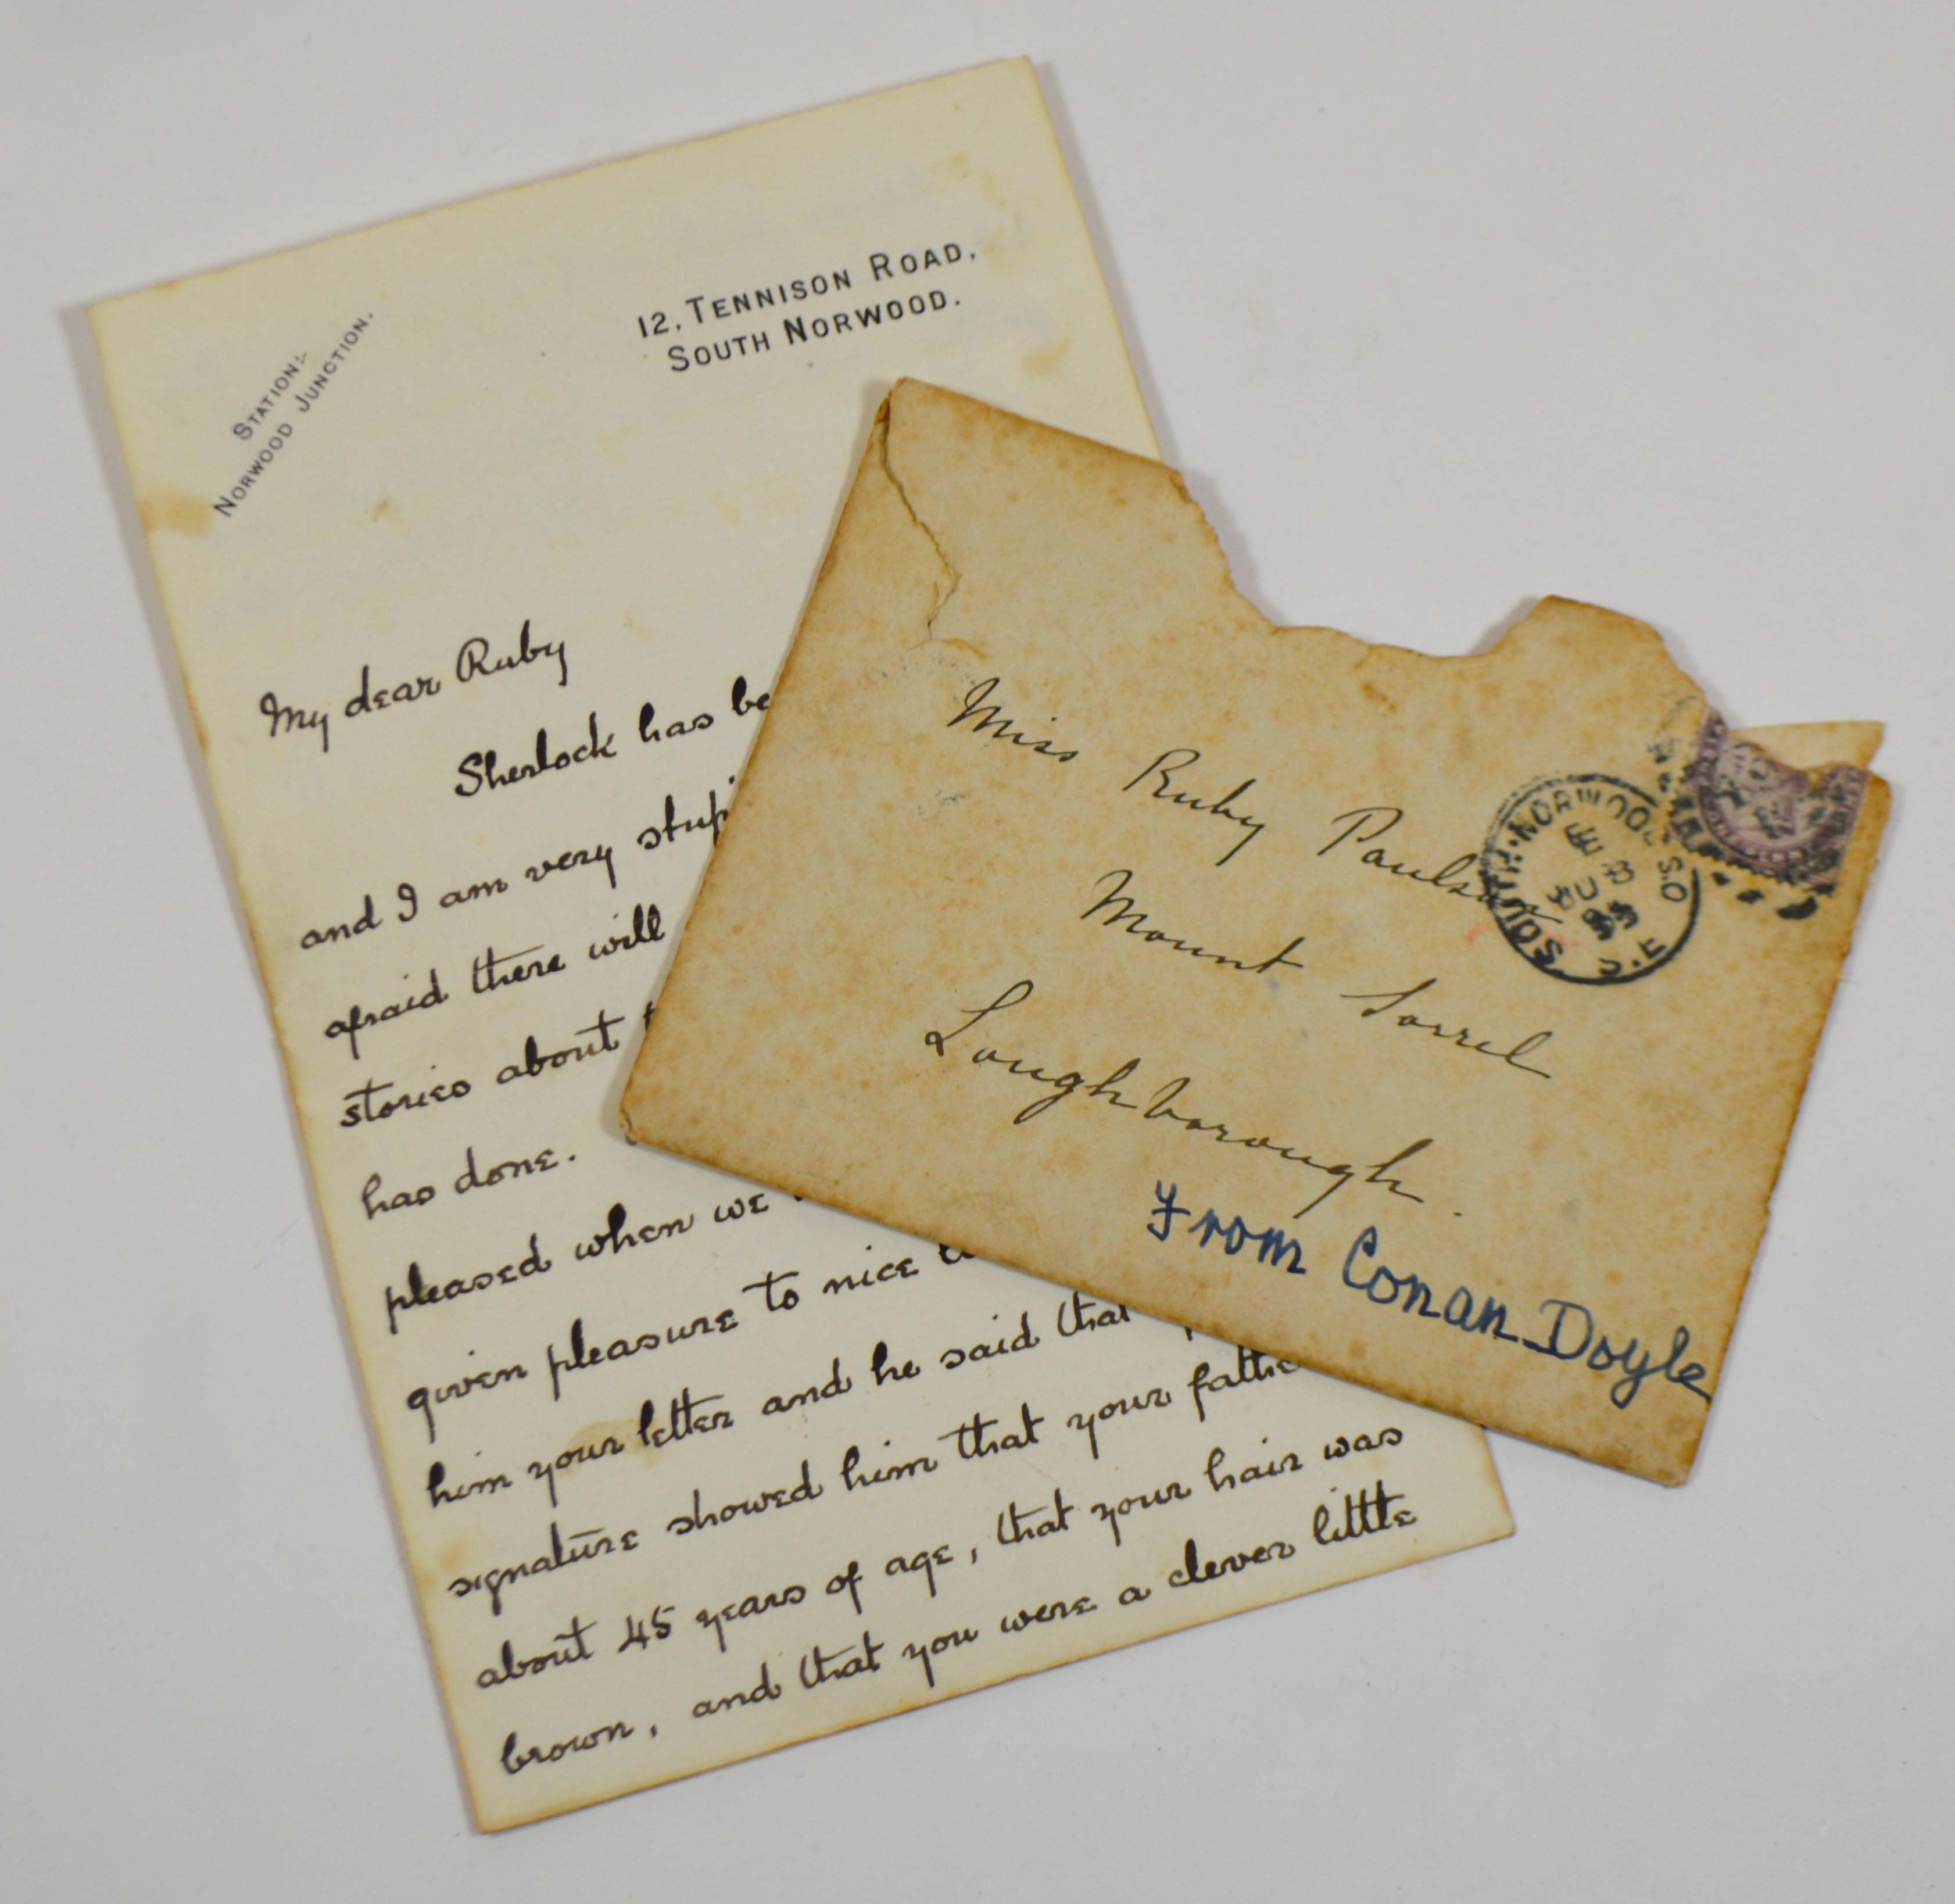 Lot 2248 - Doyle, Arthur Conan. A fine autographed letter signed to Ruby Paulson, responding to her query